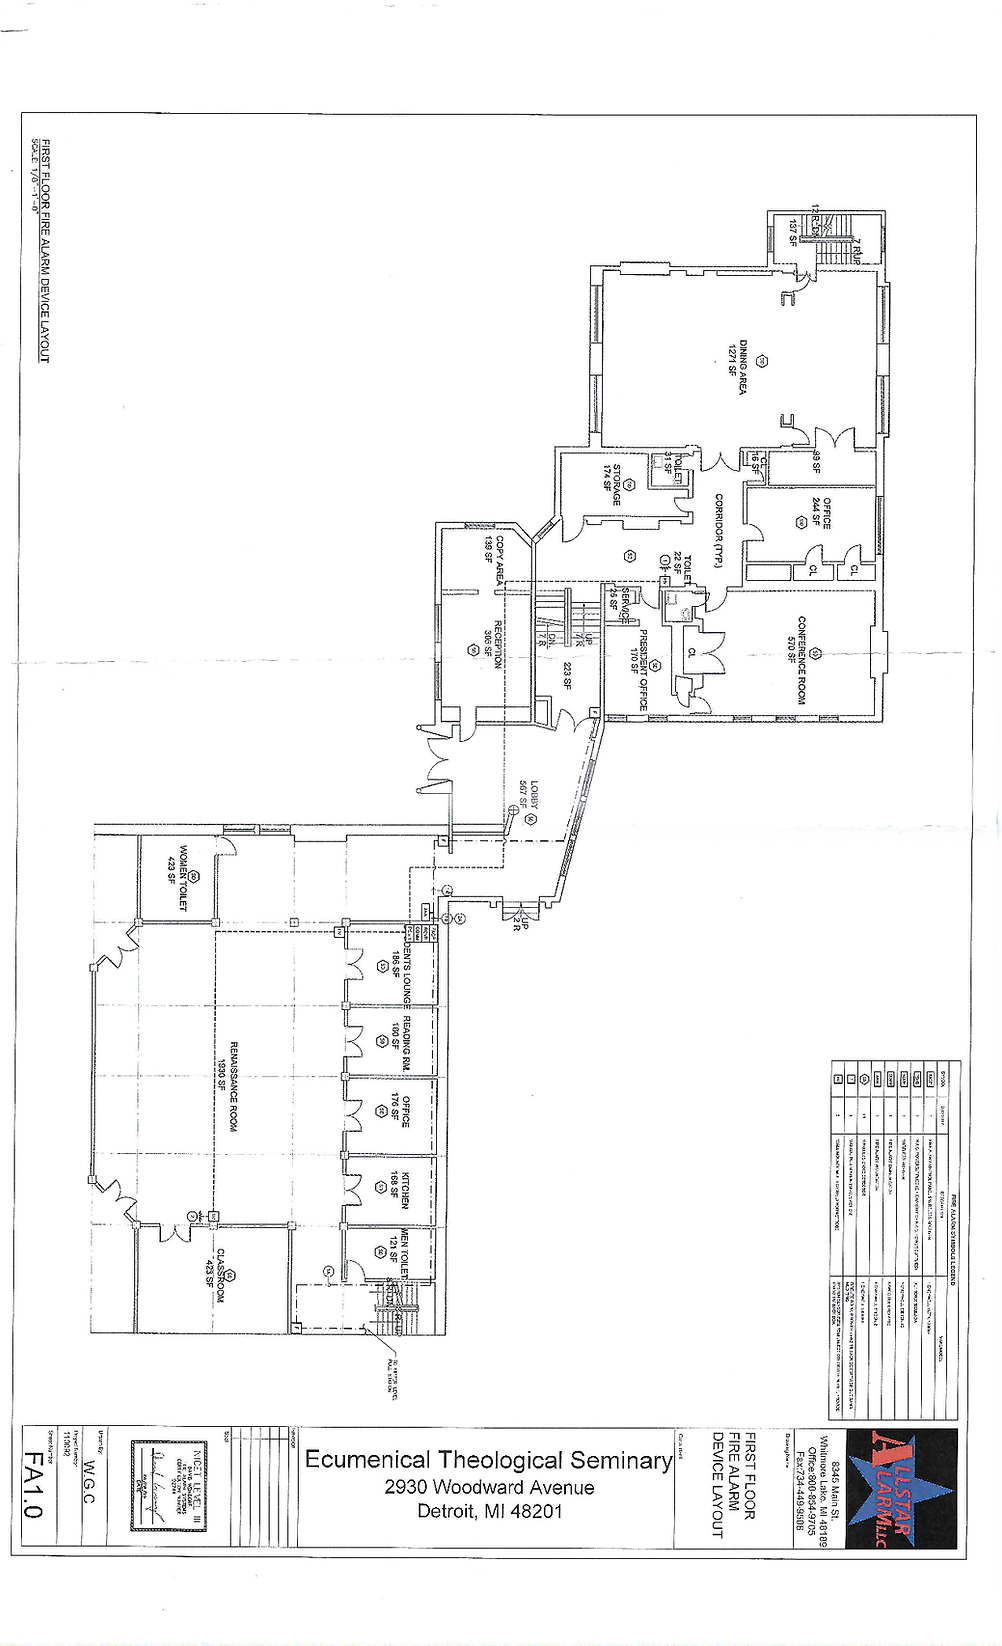 Rev Floor Plan Layout 12.2020.png